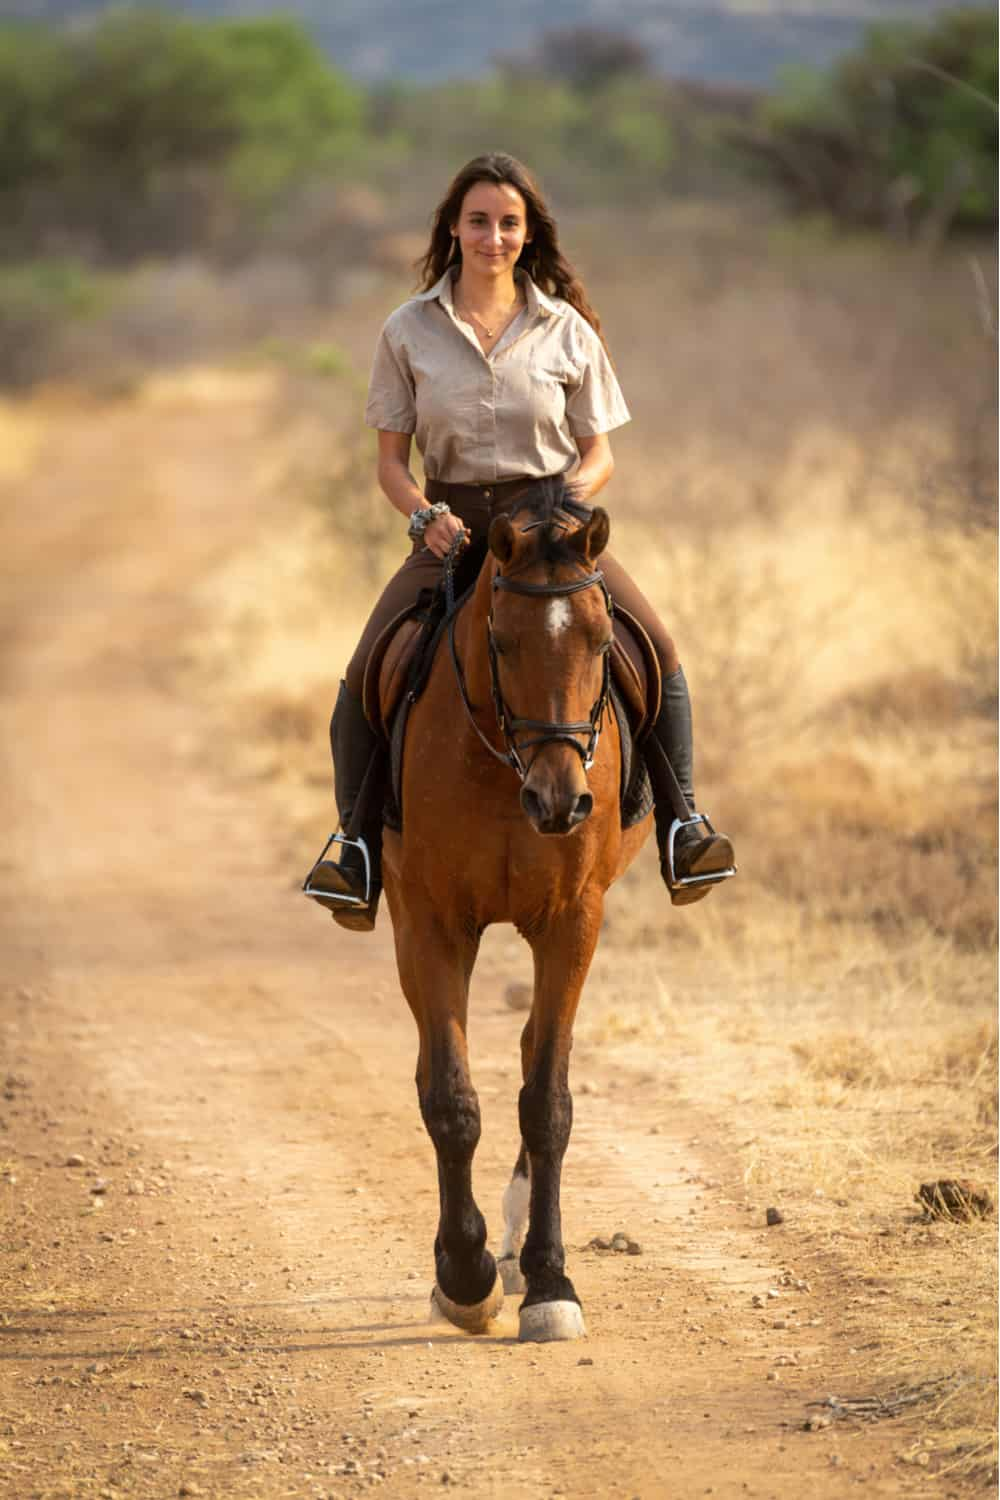 Ride your horse regularly